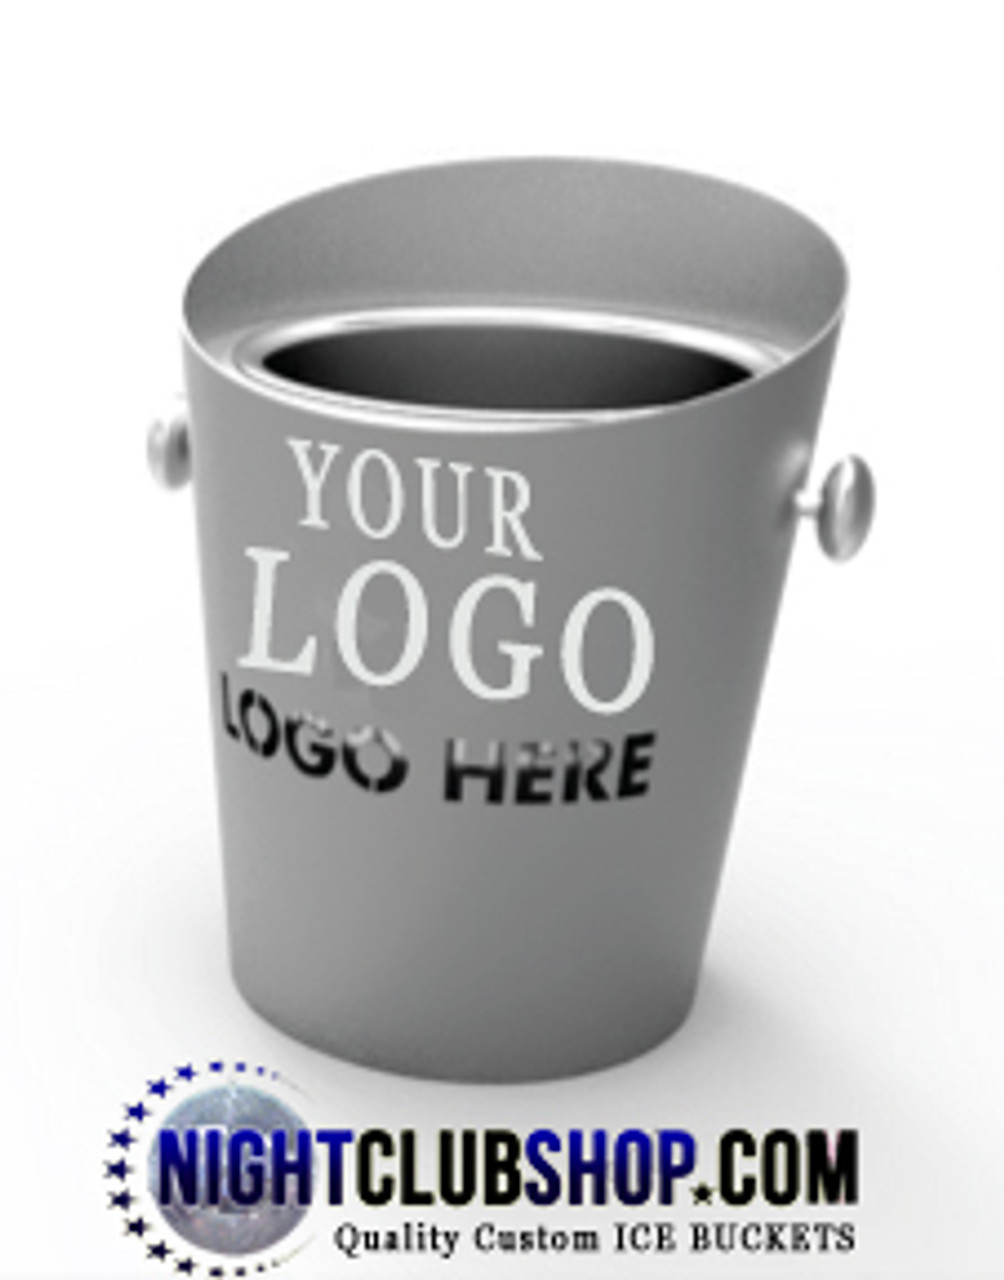 laser cut, logo, brand, led, ice, bucket, ice bucket, icebucket, champagne,bottle service, VIP Bucket, Custom,